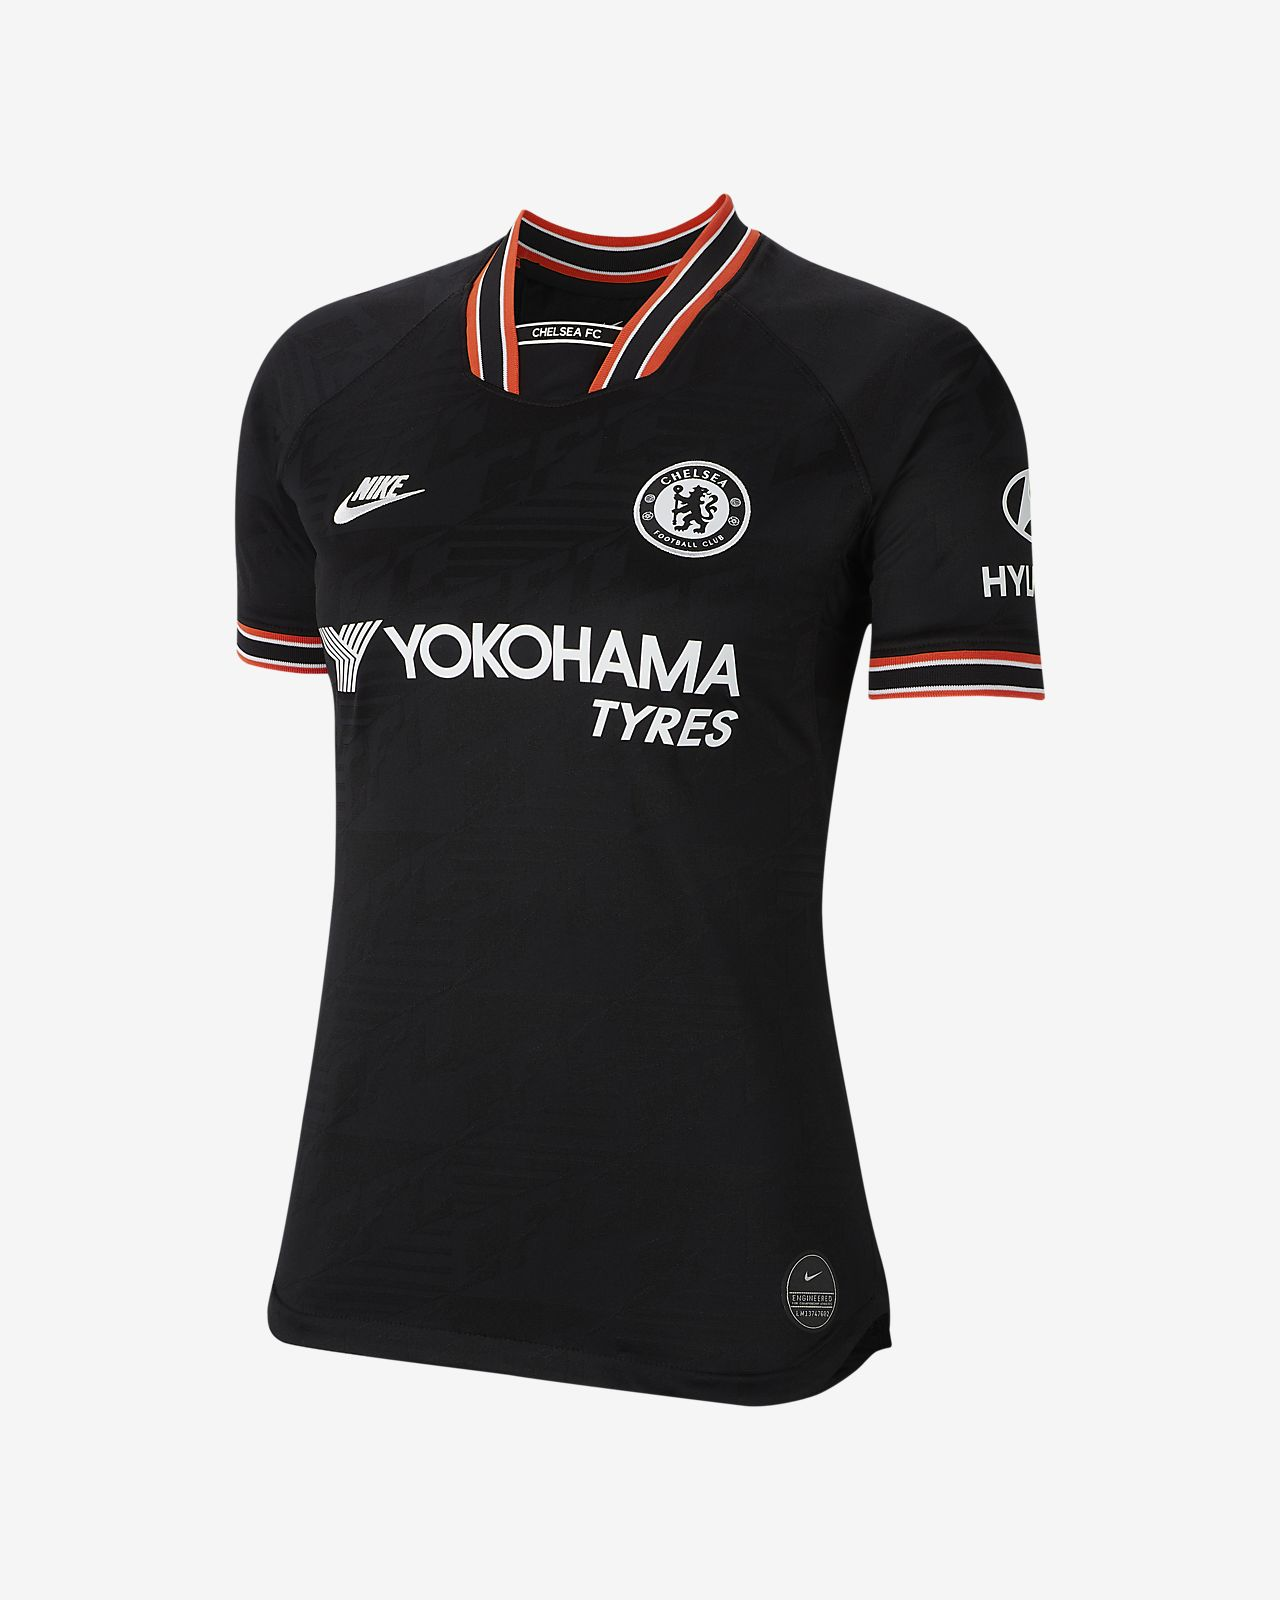 promo code 872f3 851e1 Chelsea FC 2019/20 Stadium Third Women's Football Shirt